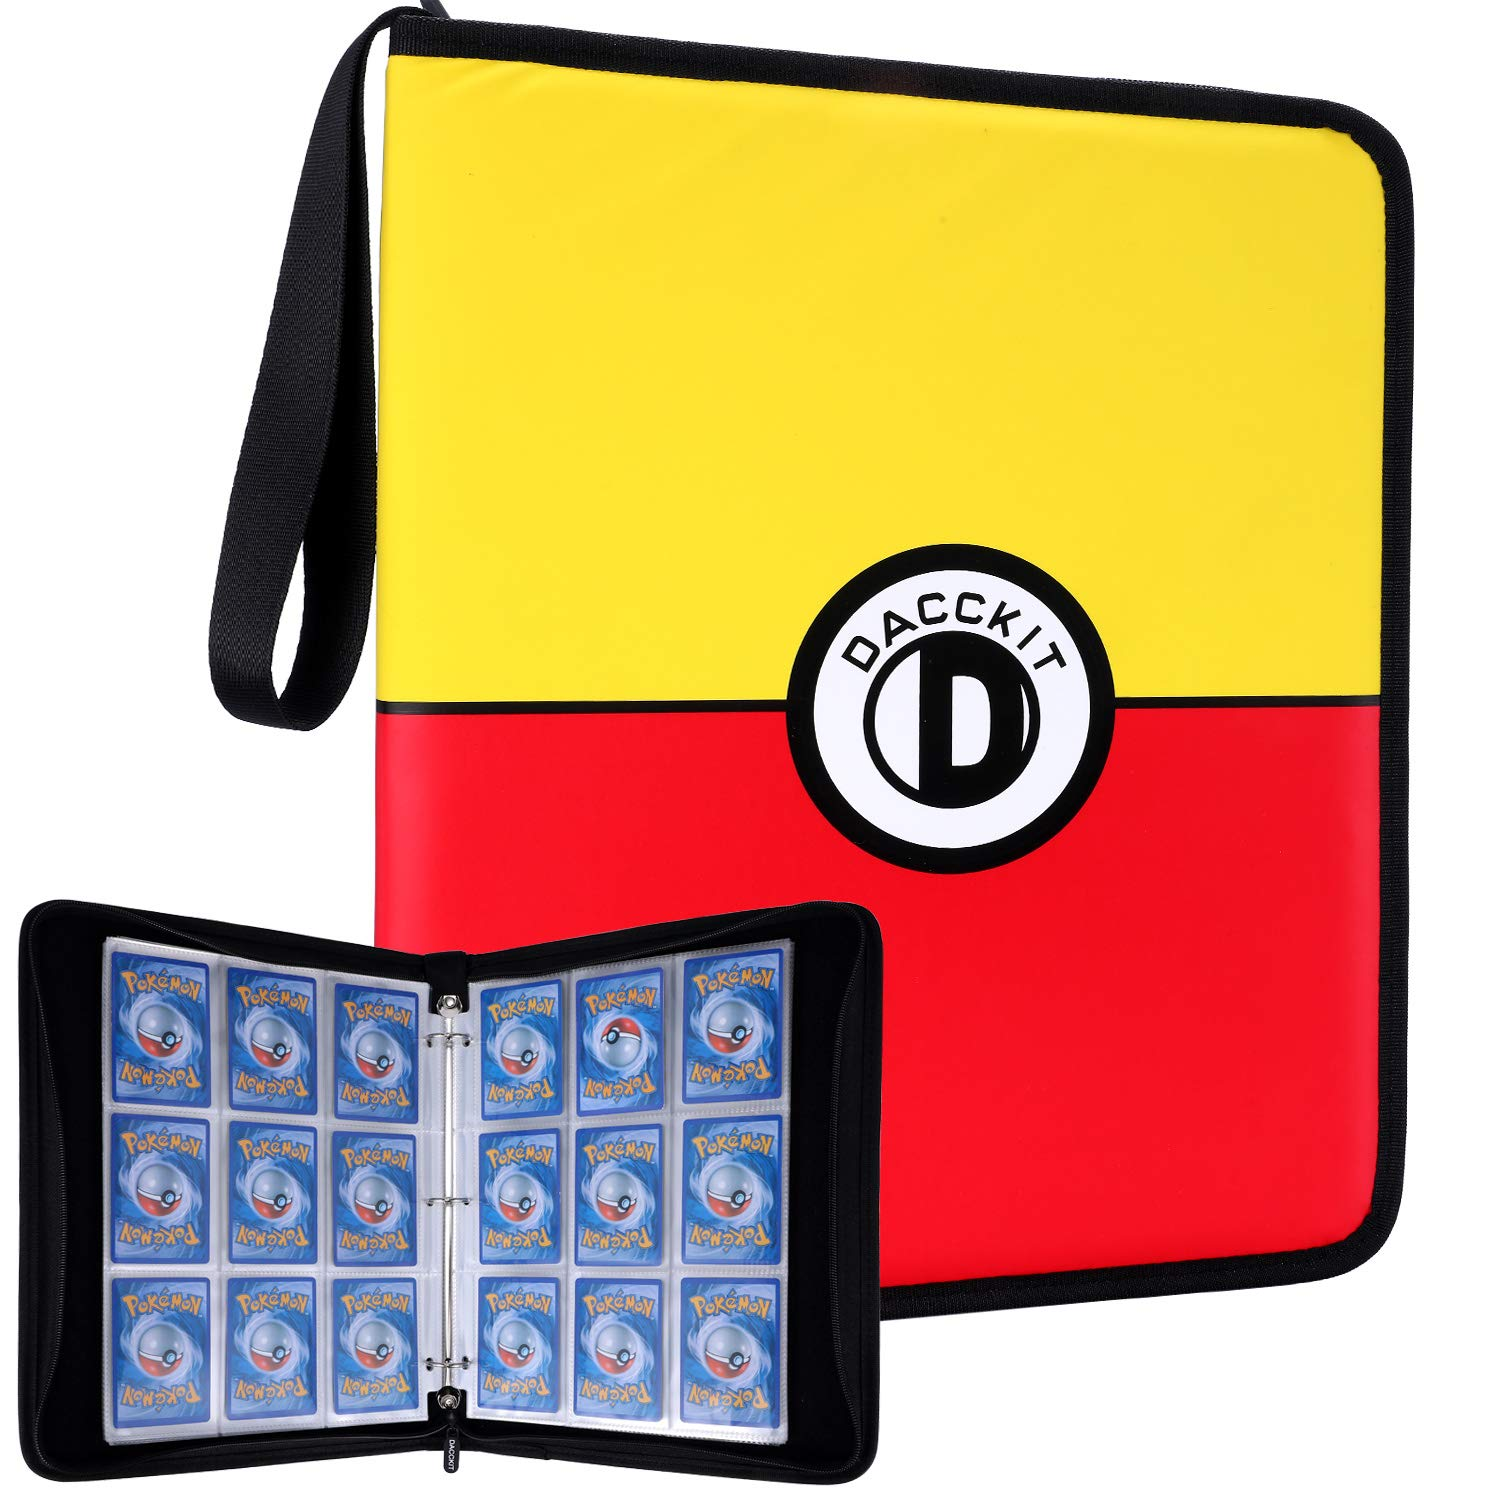 DACCKIT Carrying Case Compatible with Pokemon Trading Cards, Cards Collectors Album with 30 Premium 9-Pocket Pages, Holds Up to 540 Cards (Color Version)